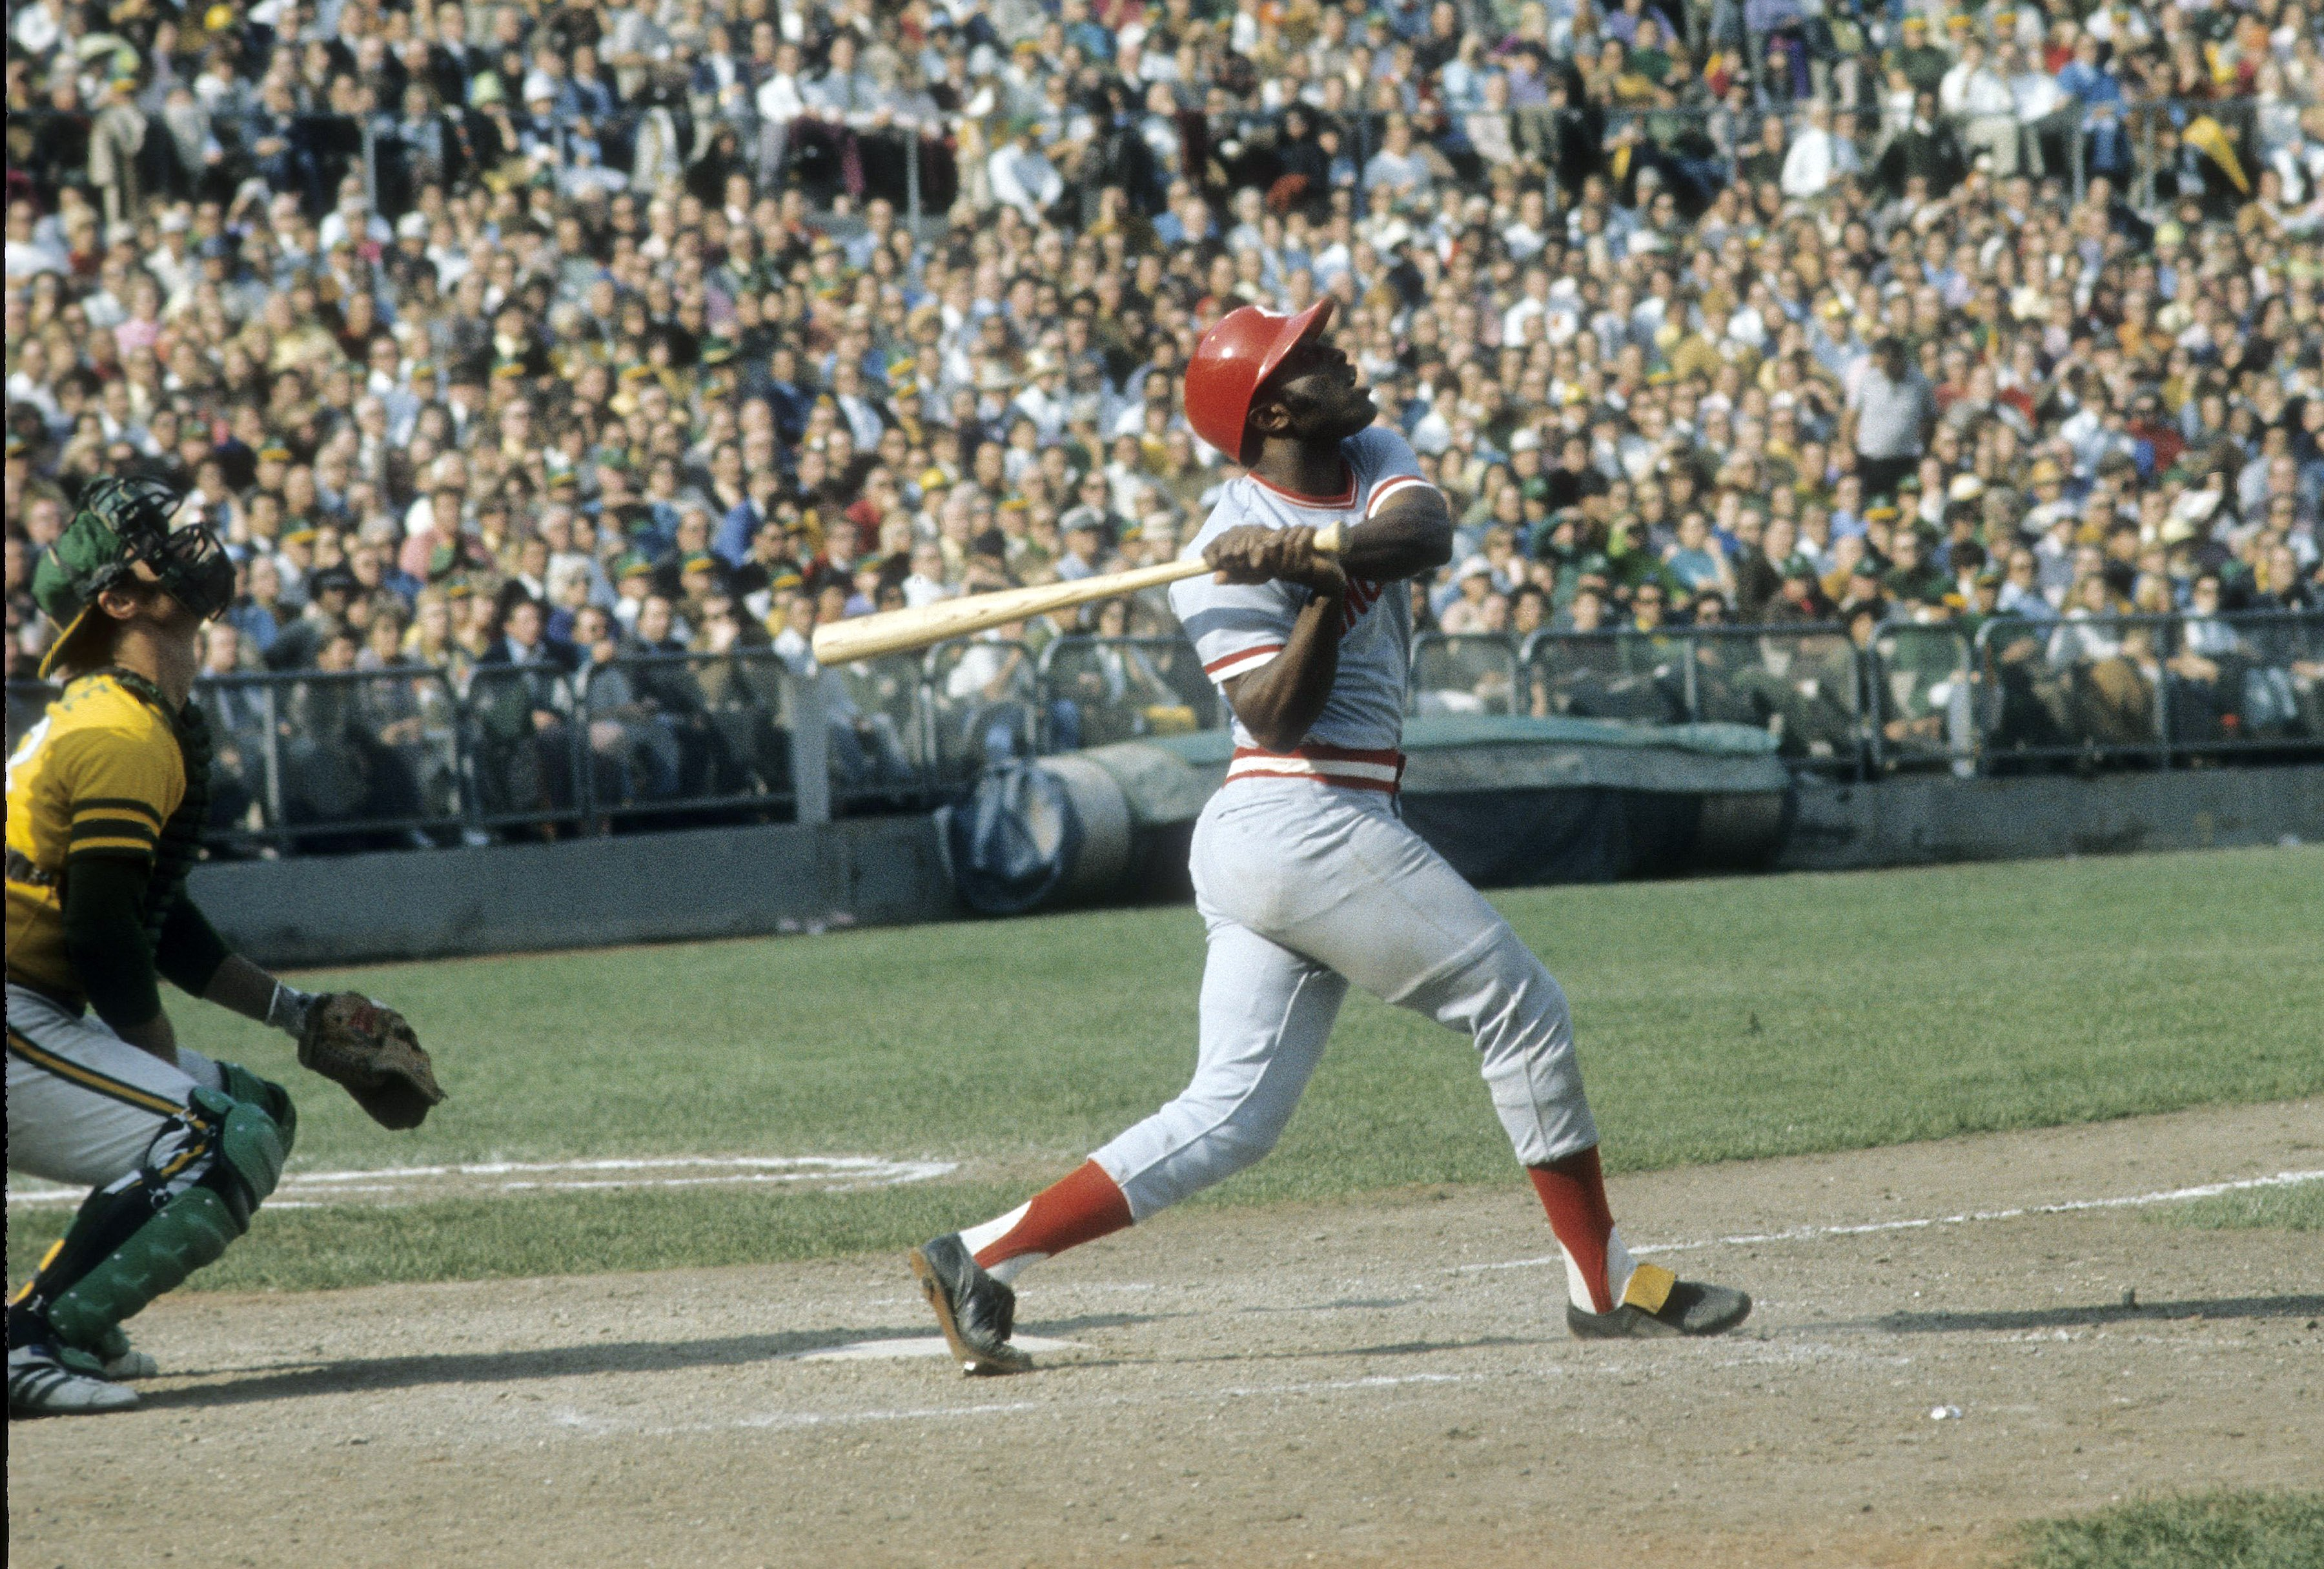 Why did Joe Morgan flap his back elbow at the plate?